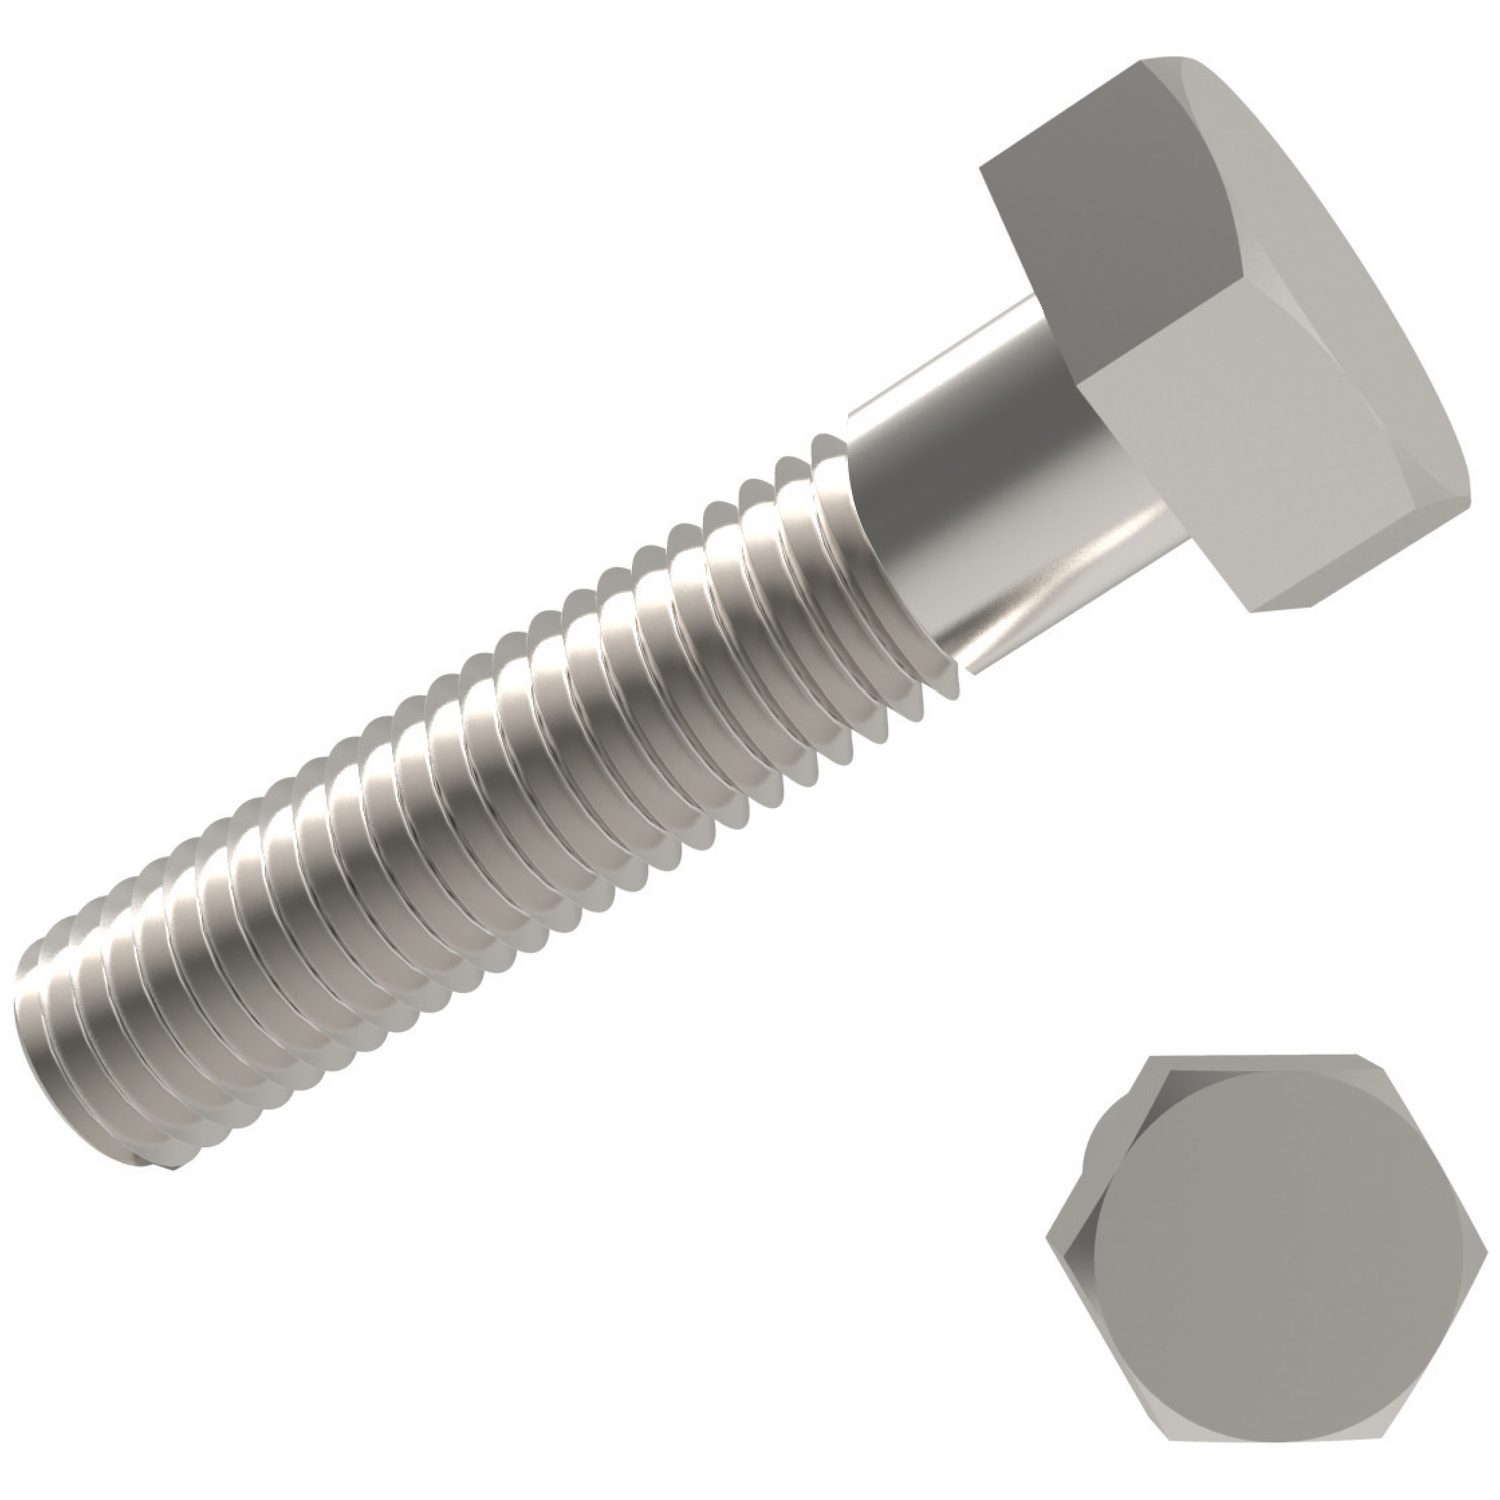 Hex. Head Bolts